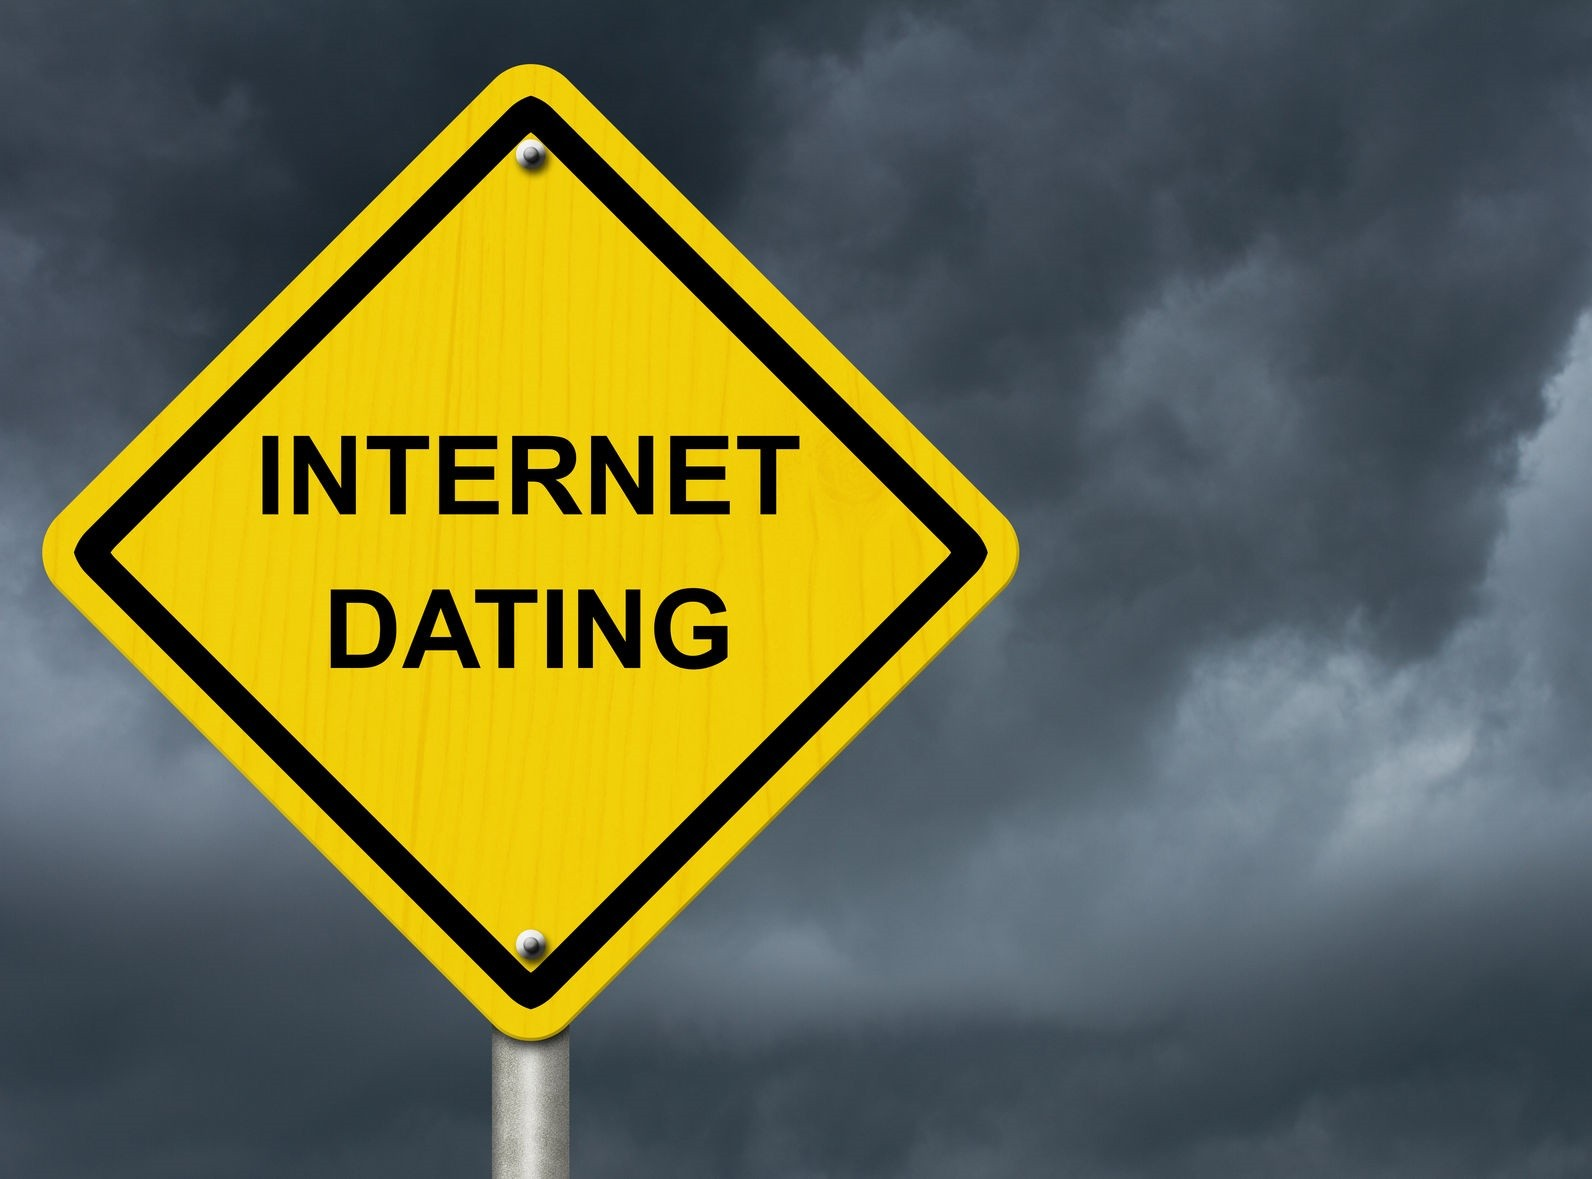 Online dating warning signs in Perth